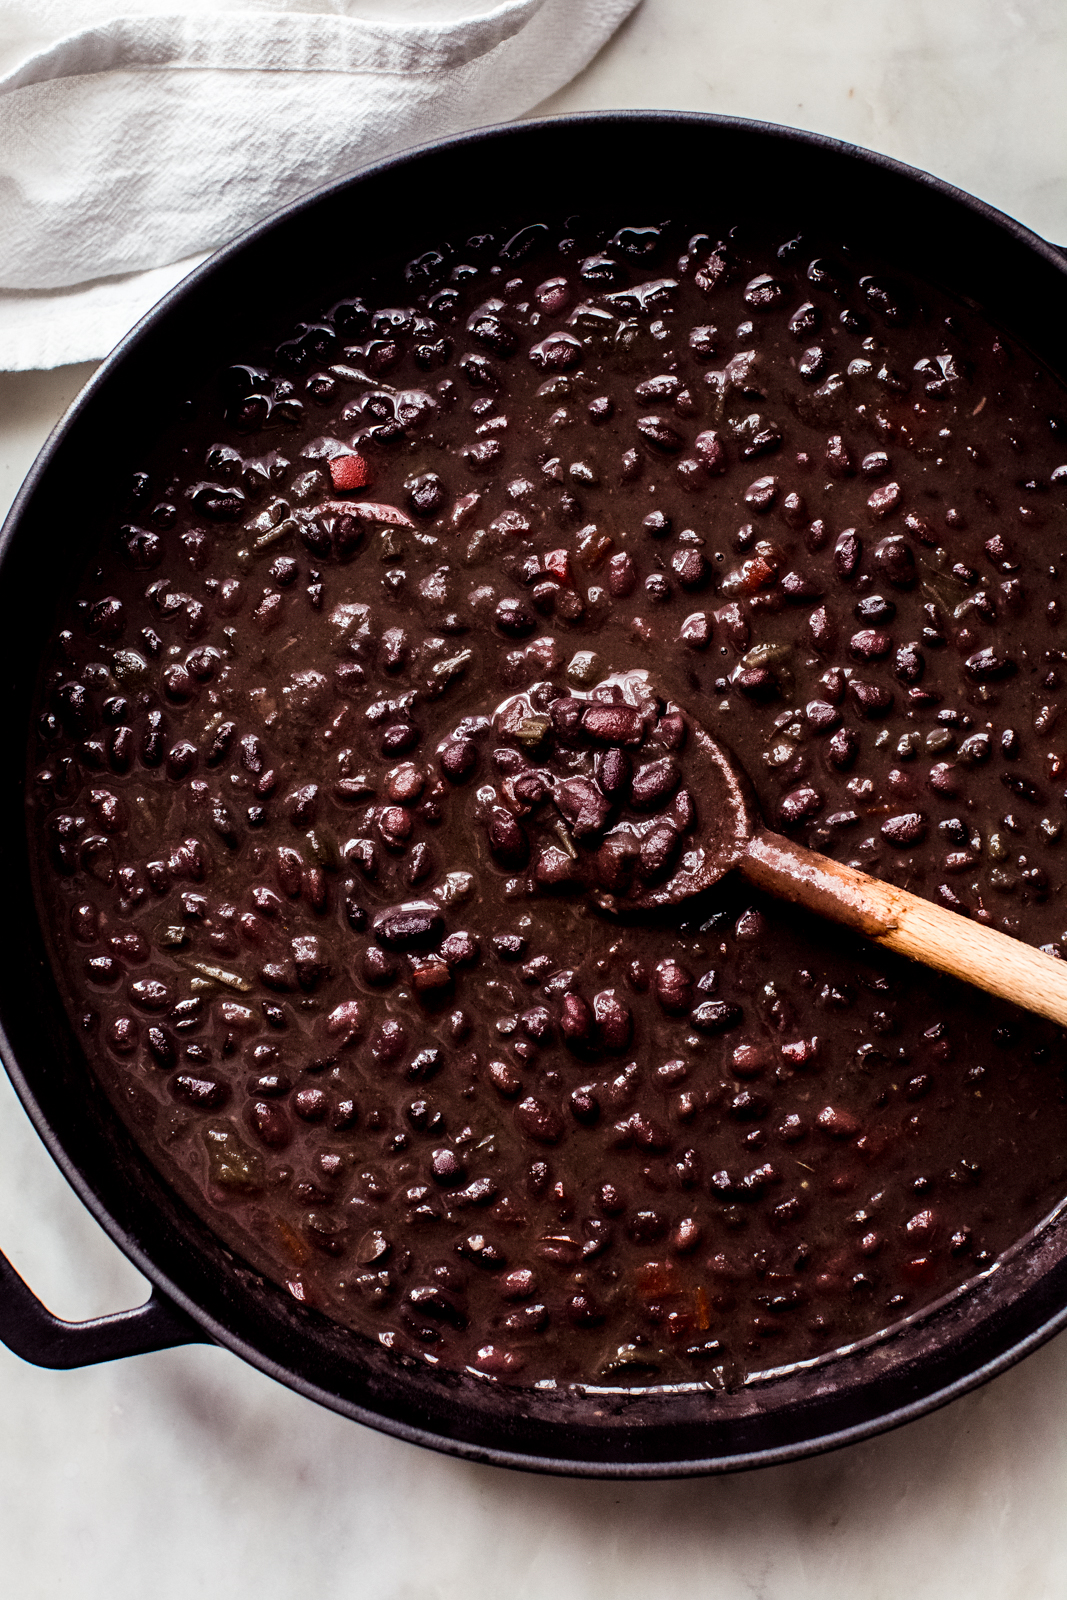 simmered cuban black bean soup in cast iron pot with wooden spoon